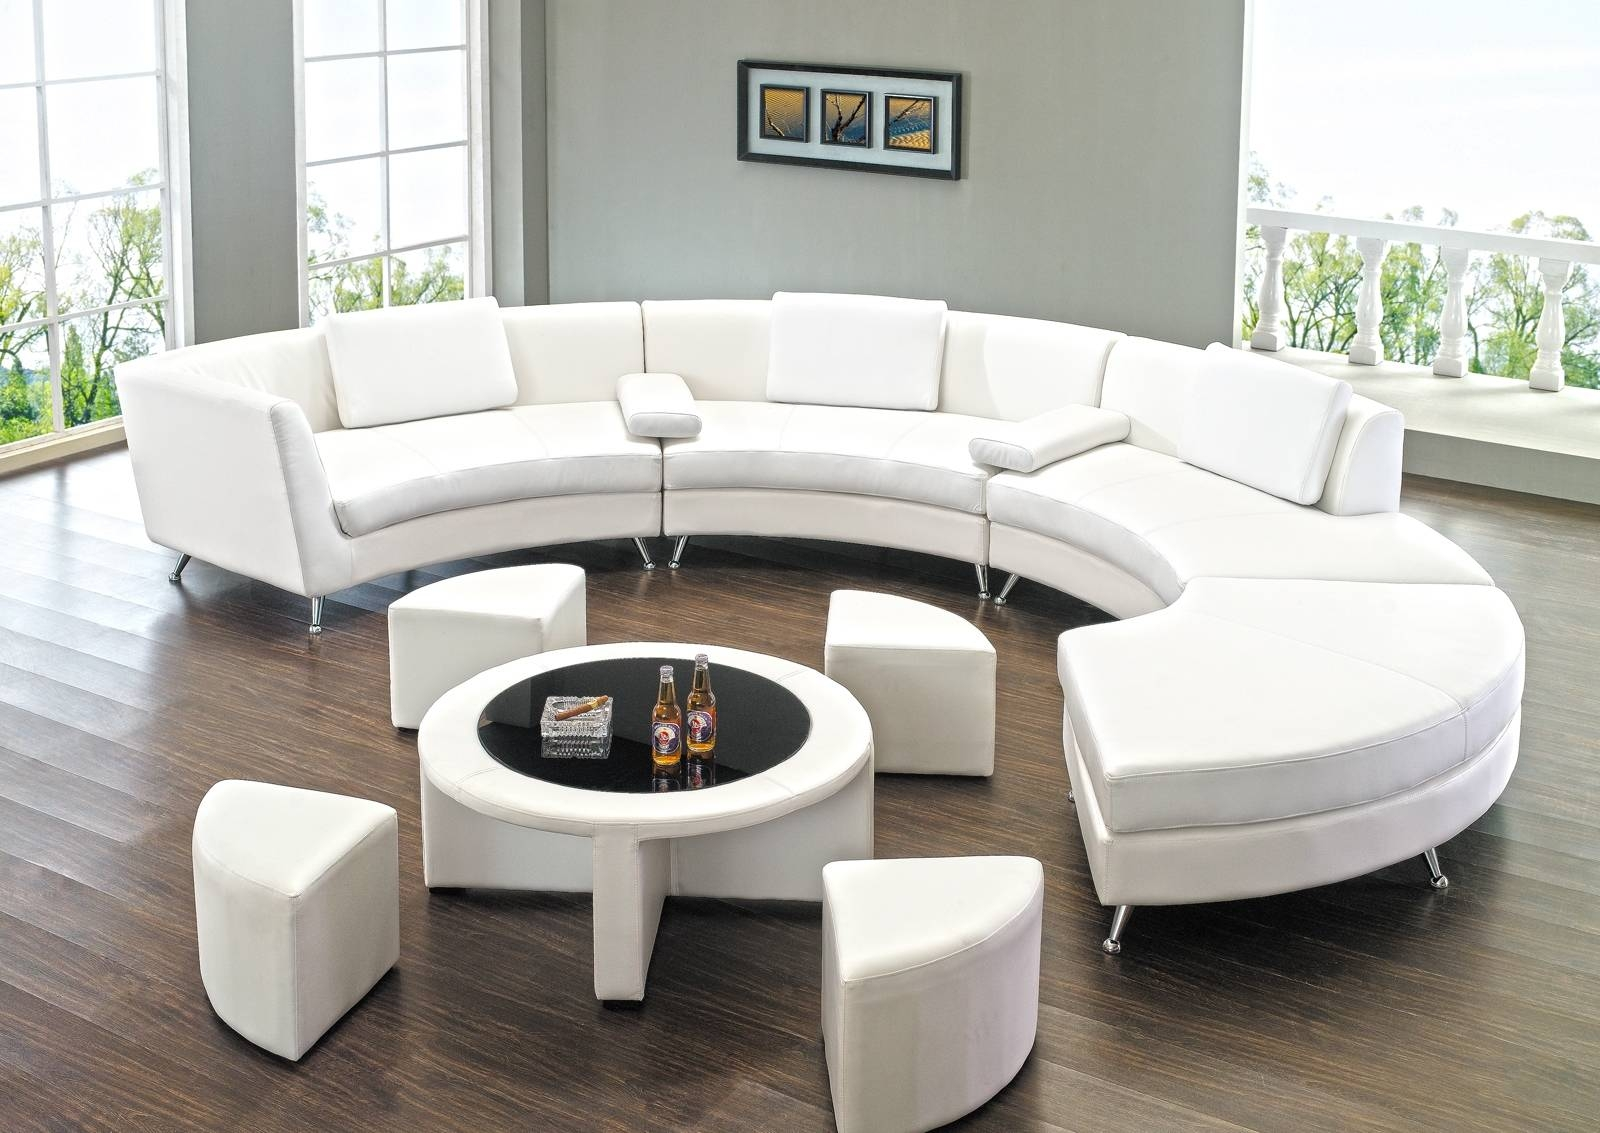 Sofas Center : Circular Sectional Sofas Outdoor Sofa Circleniture within Circle Sofas (Image 22 of 25)